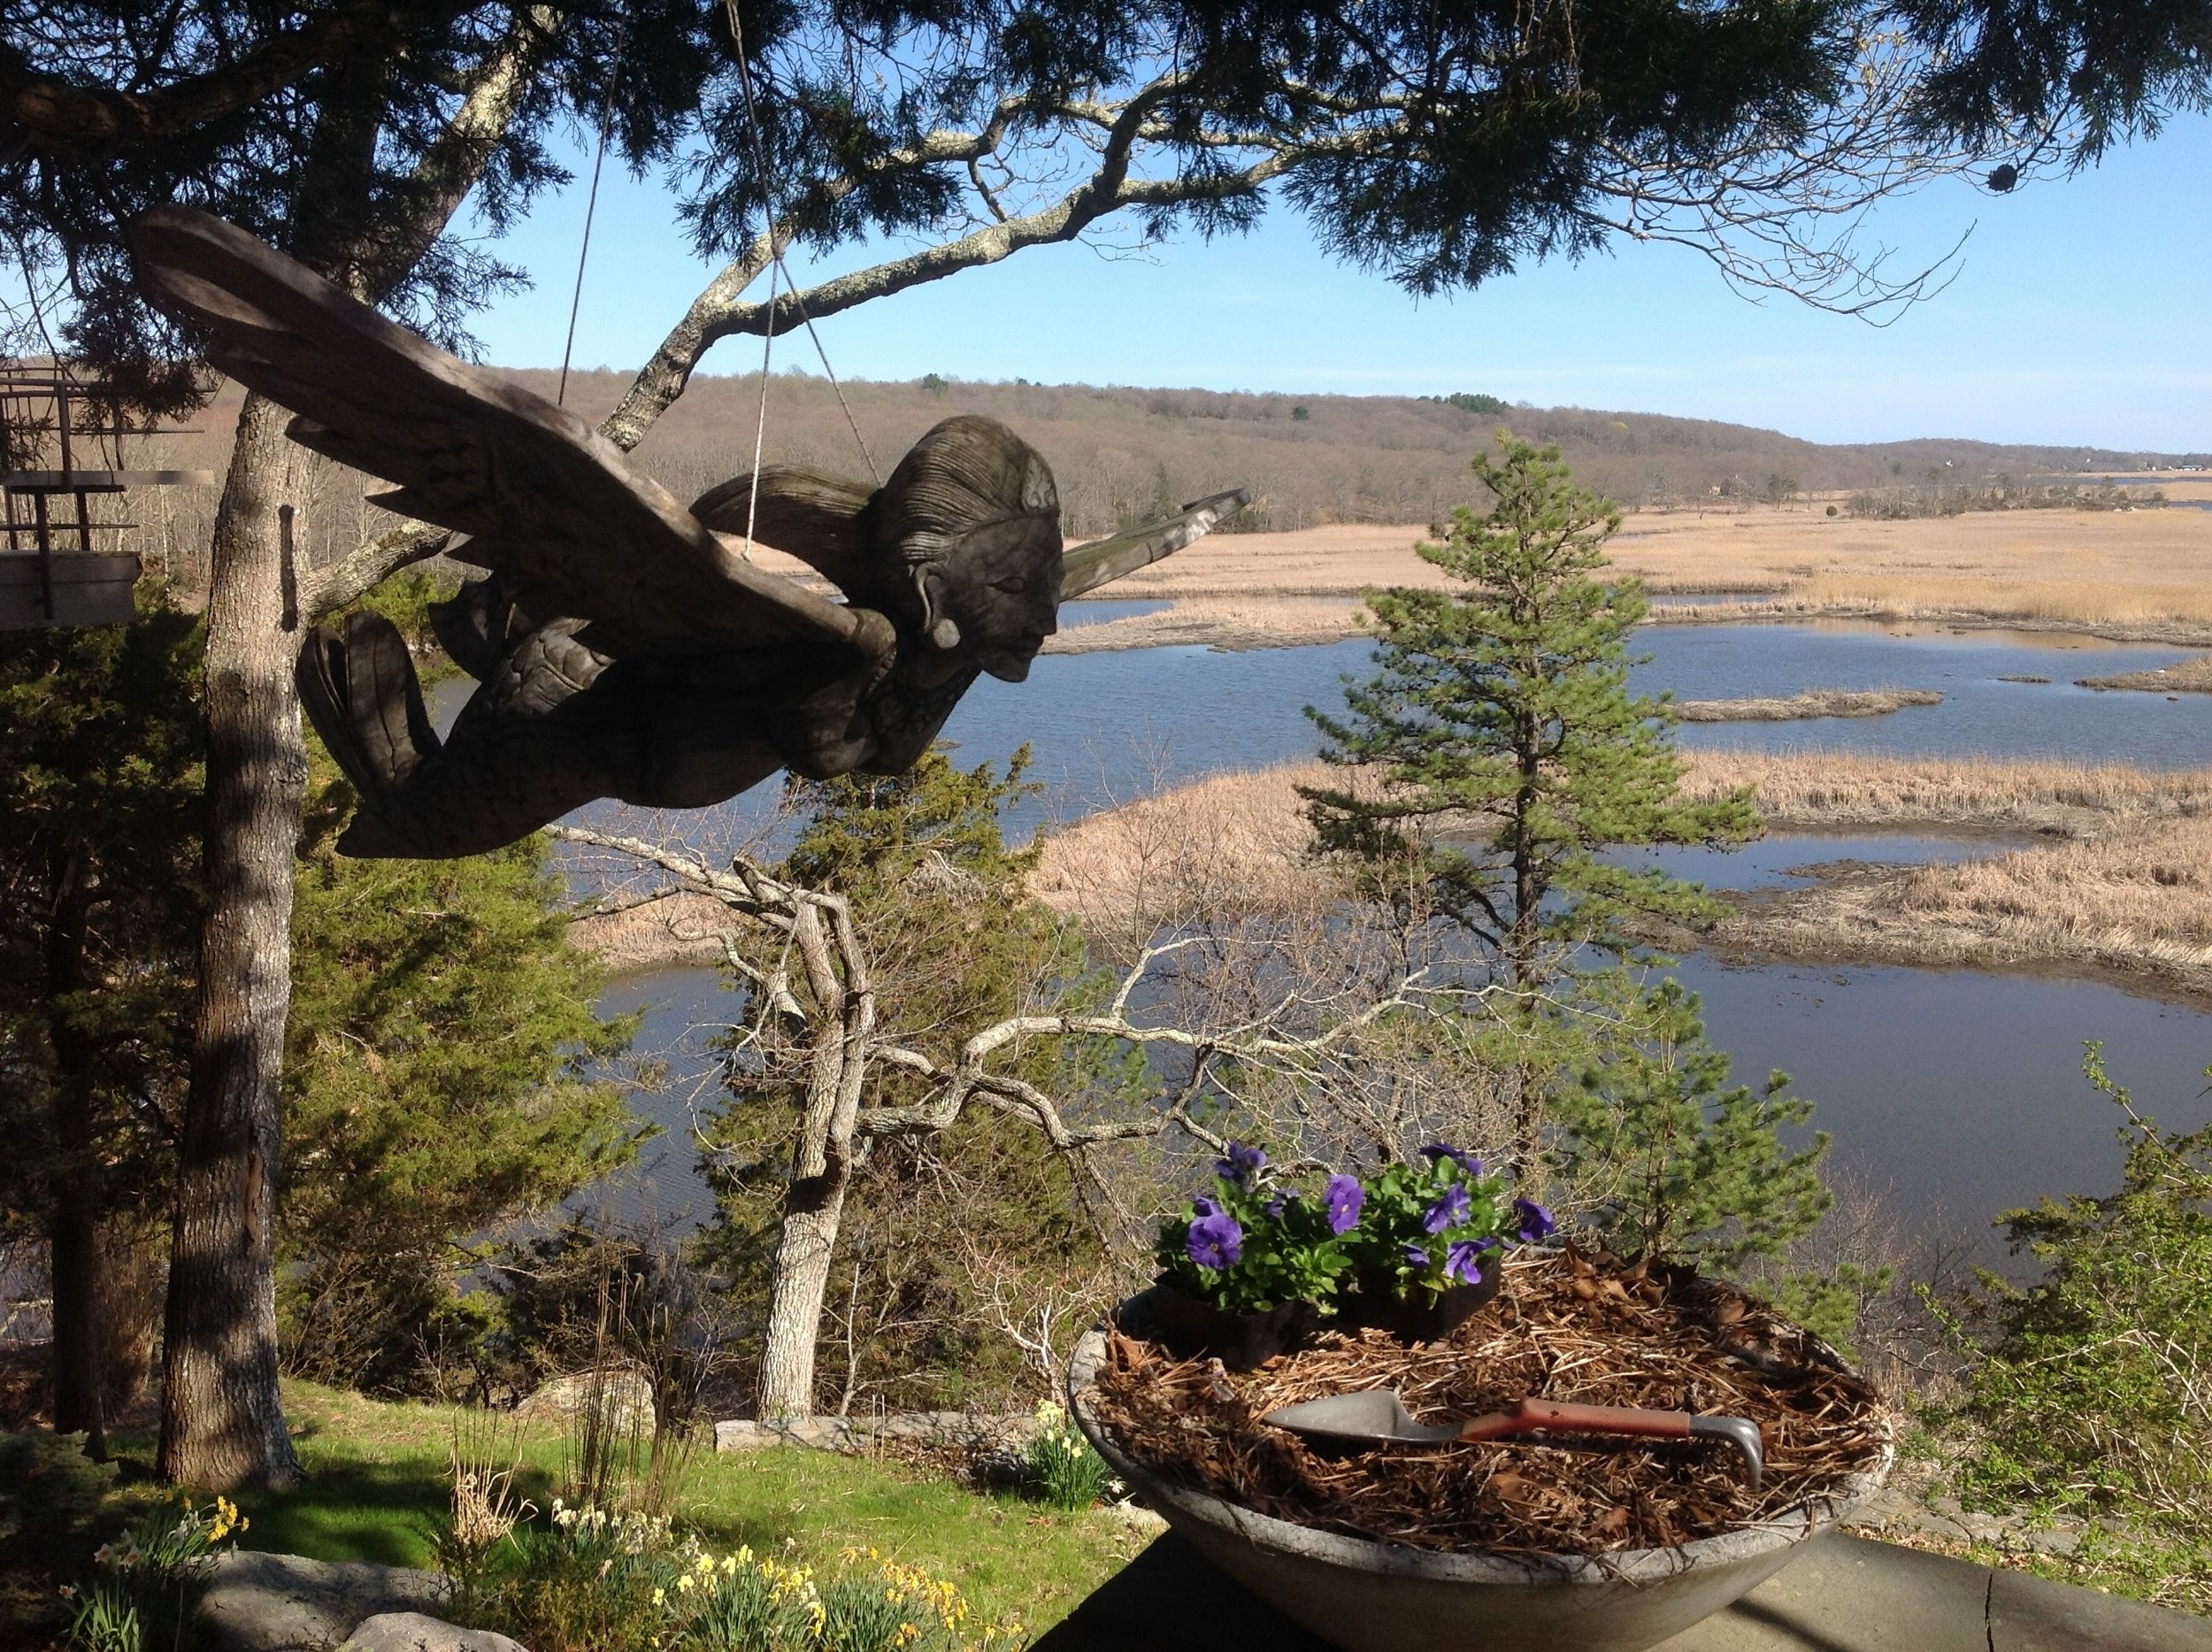 The view from our Lyme hosts' home.